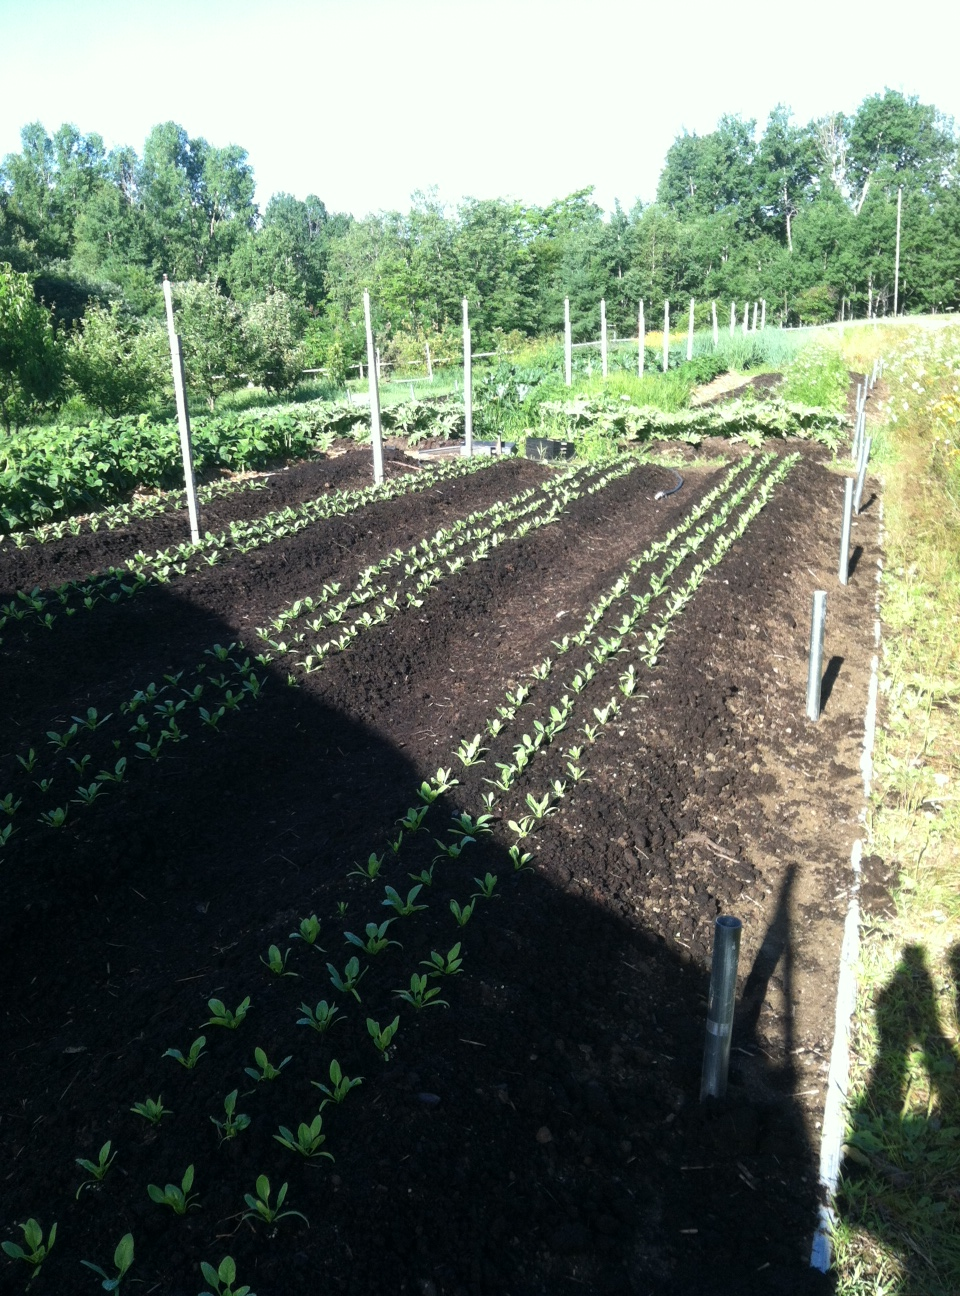 Pea vines and trellis removed, spinach seedlings planted for fall garden.